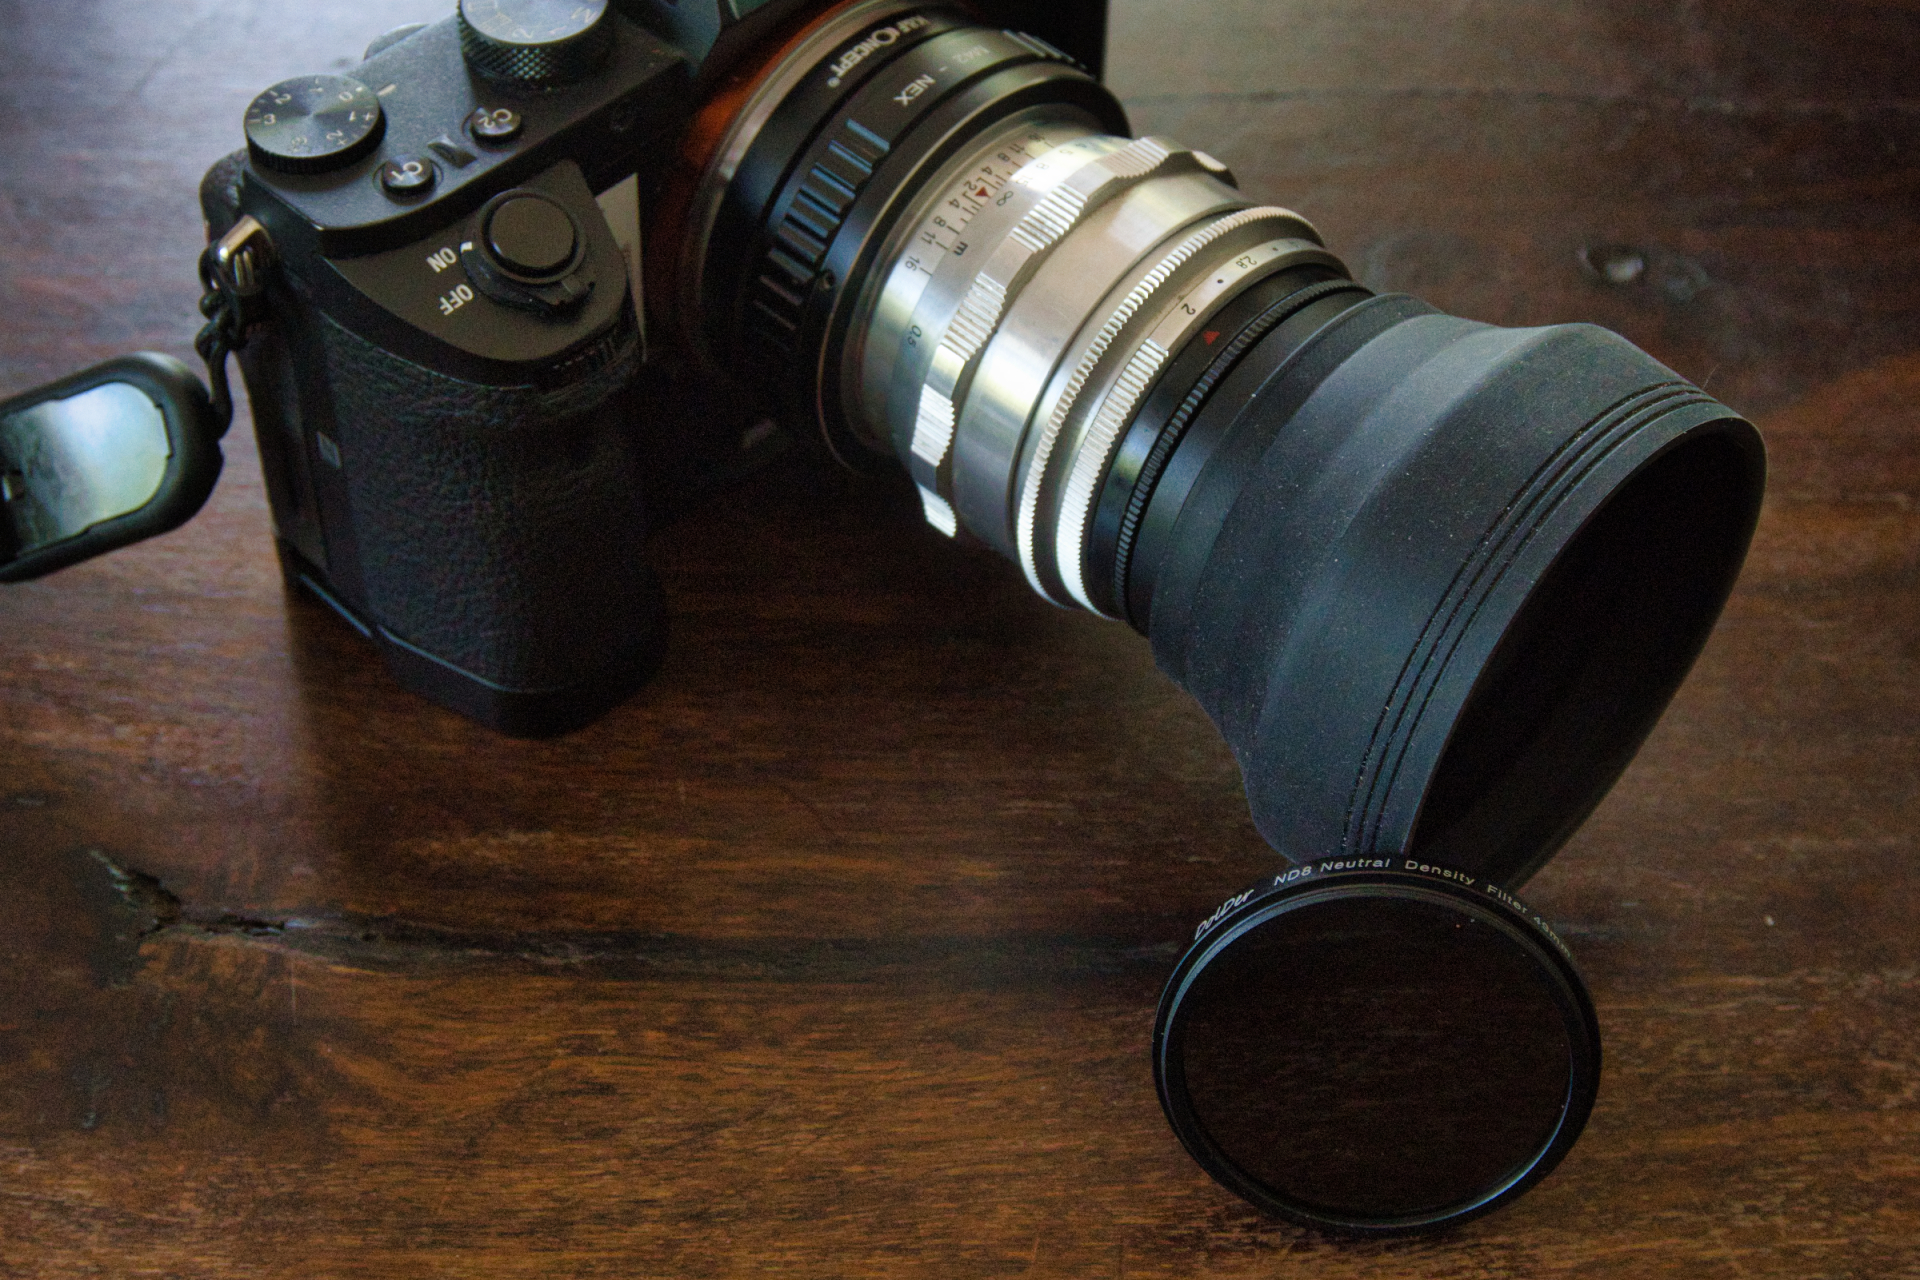 Carl Zeiss Biotar 58 f2 with ND8 grey filter and lens hood